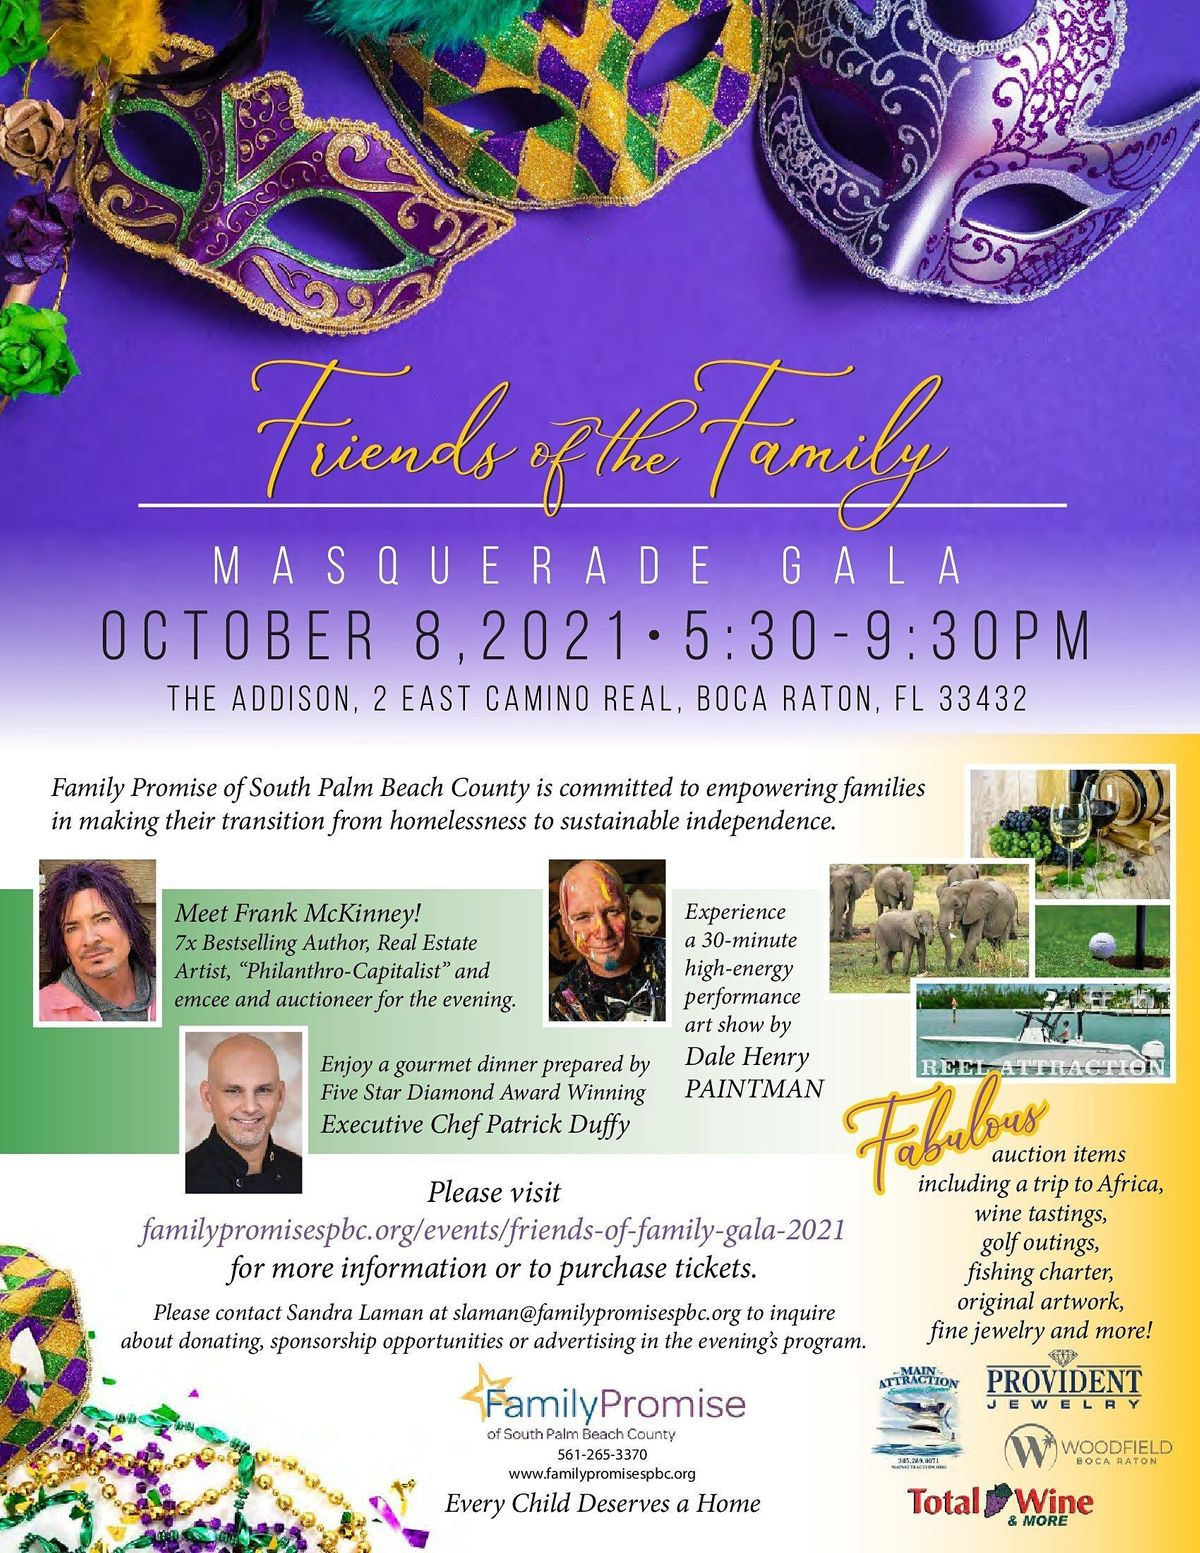 Friends of the Family Masquerade Gala, 8 October | Event in Boca Raton | AllEvents.in